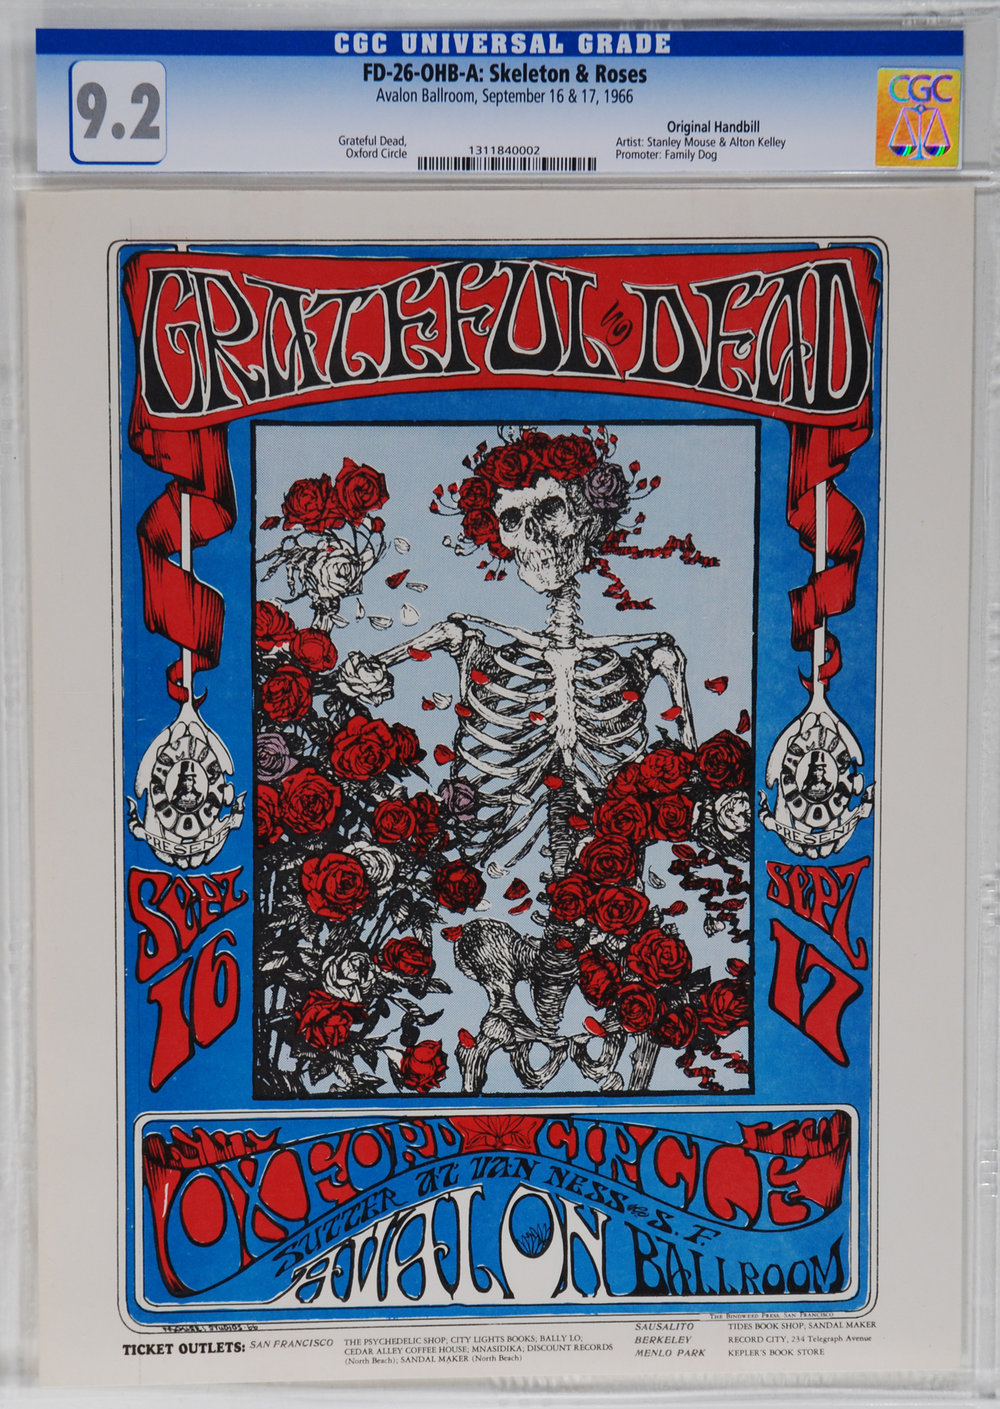 Vintage concert handbills offer the same iconic art as the poster for a fraction of the price.